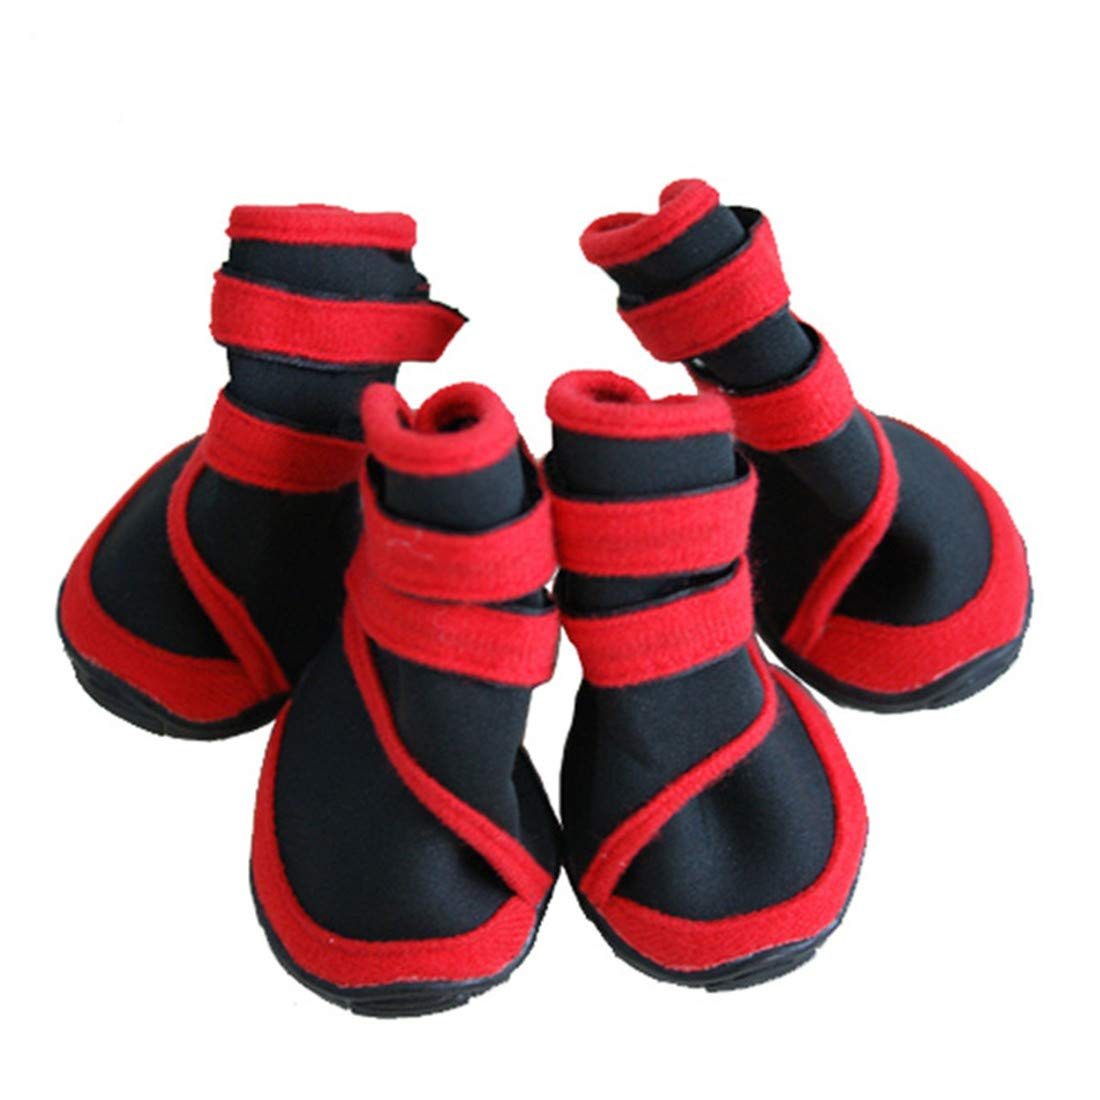 M-Upgrade, Red+Black VICTORIE Dog Shoes Winter Warm Waterproof Protective Pet Boots for Small Medium Large Dog red Black 4pcs